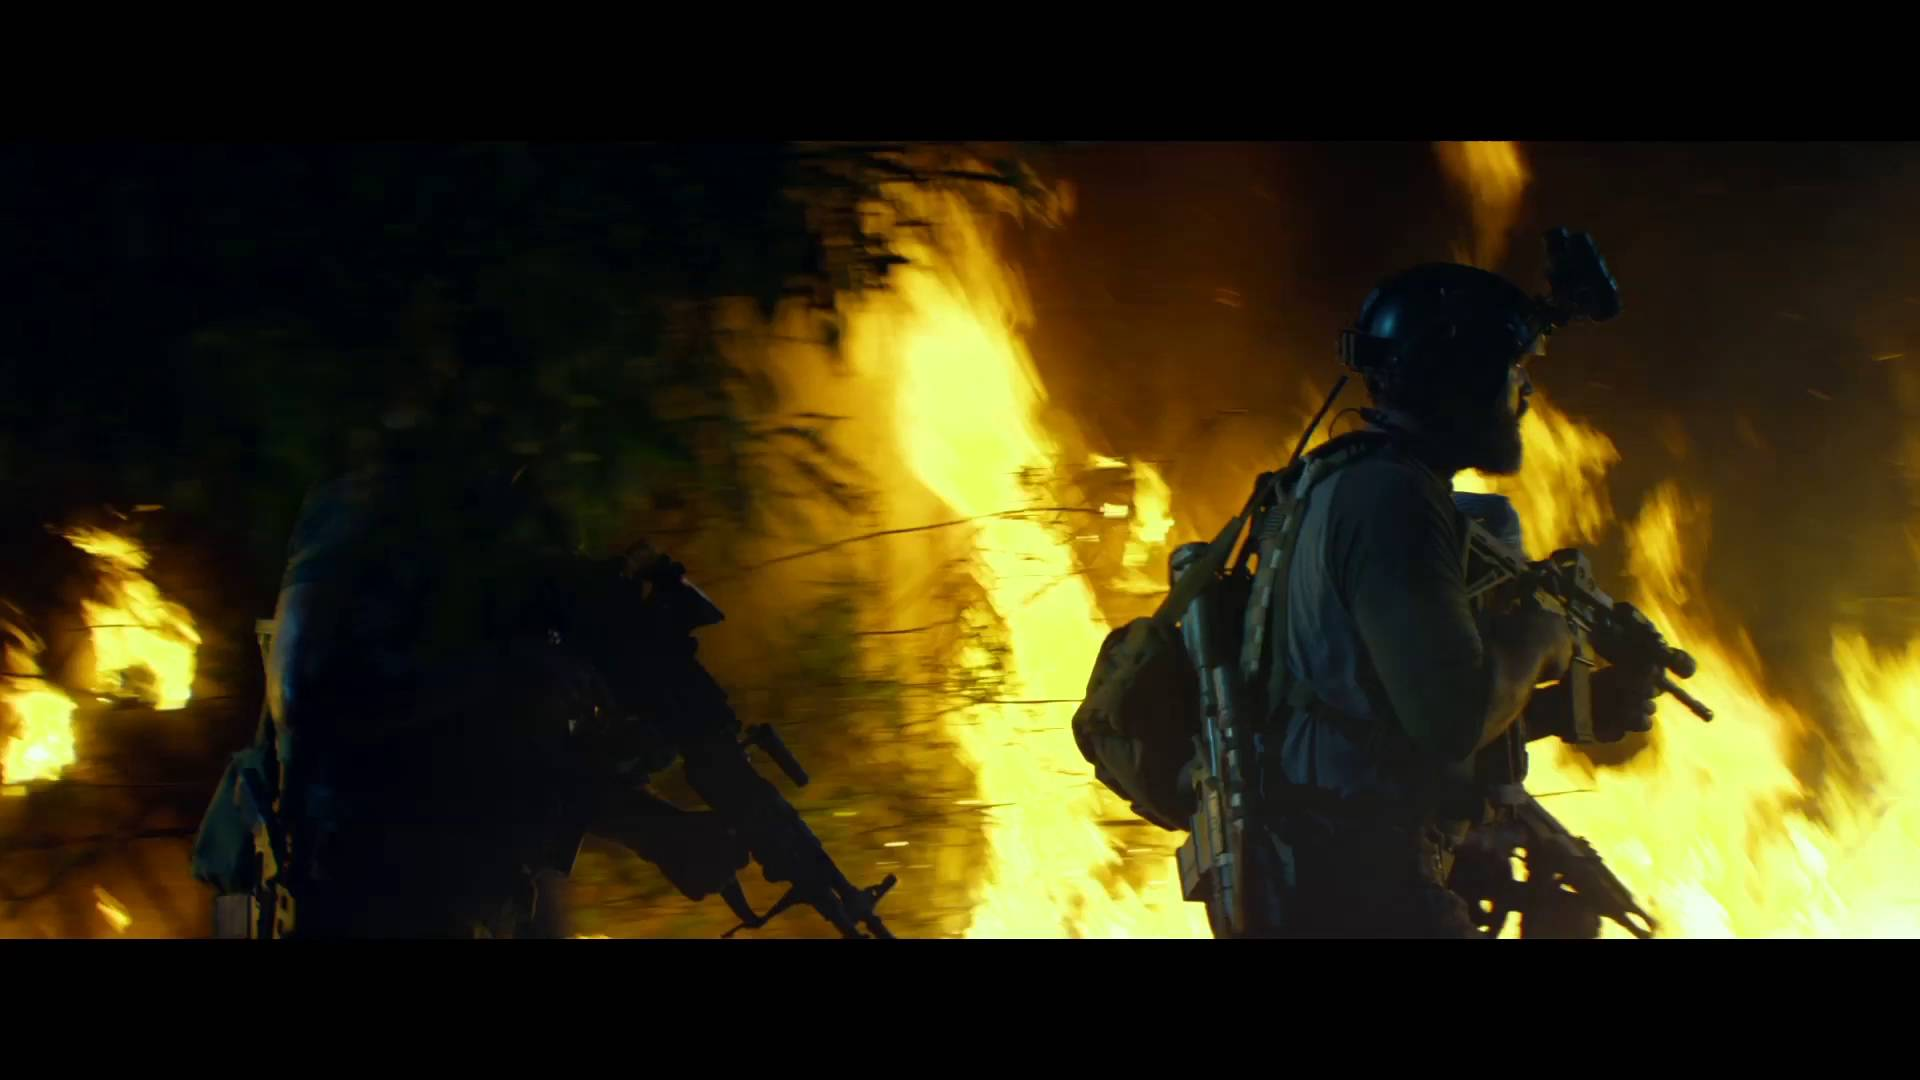 13 Hours: The Secret Soldiers of Benghazi   Objective   Paramount Pictures UK